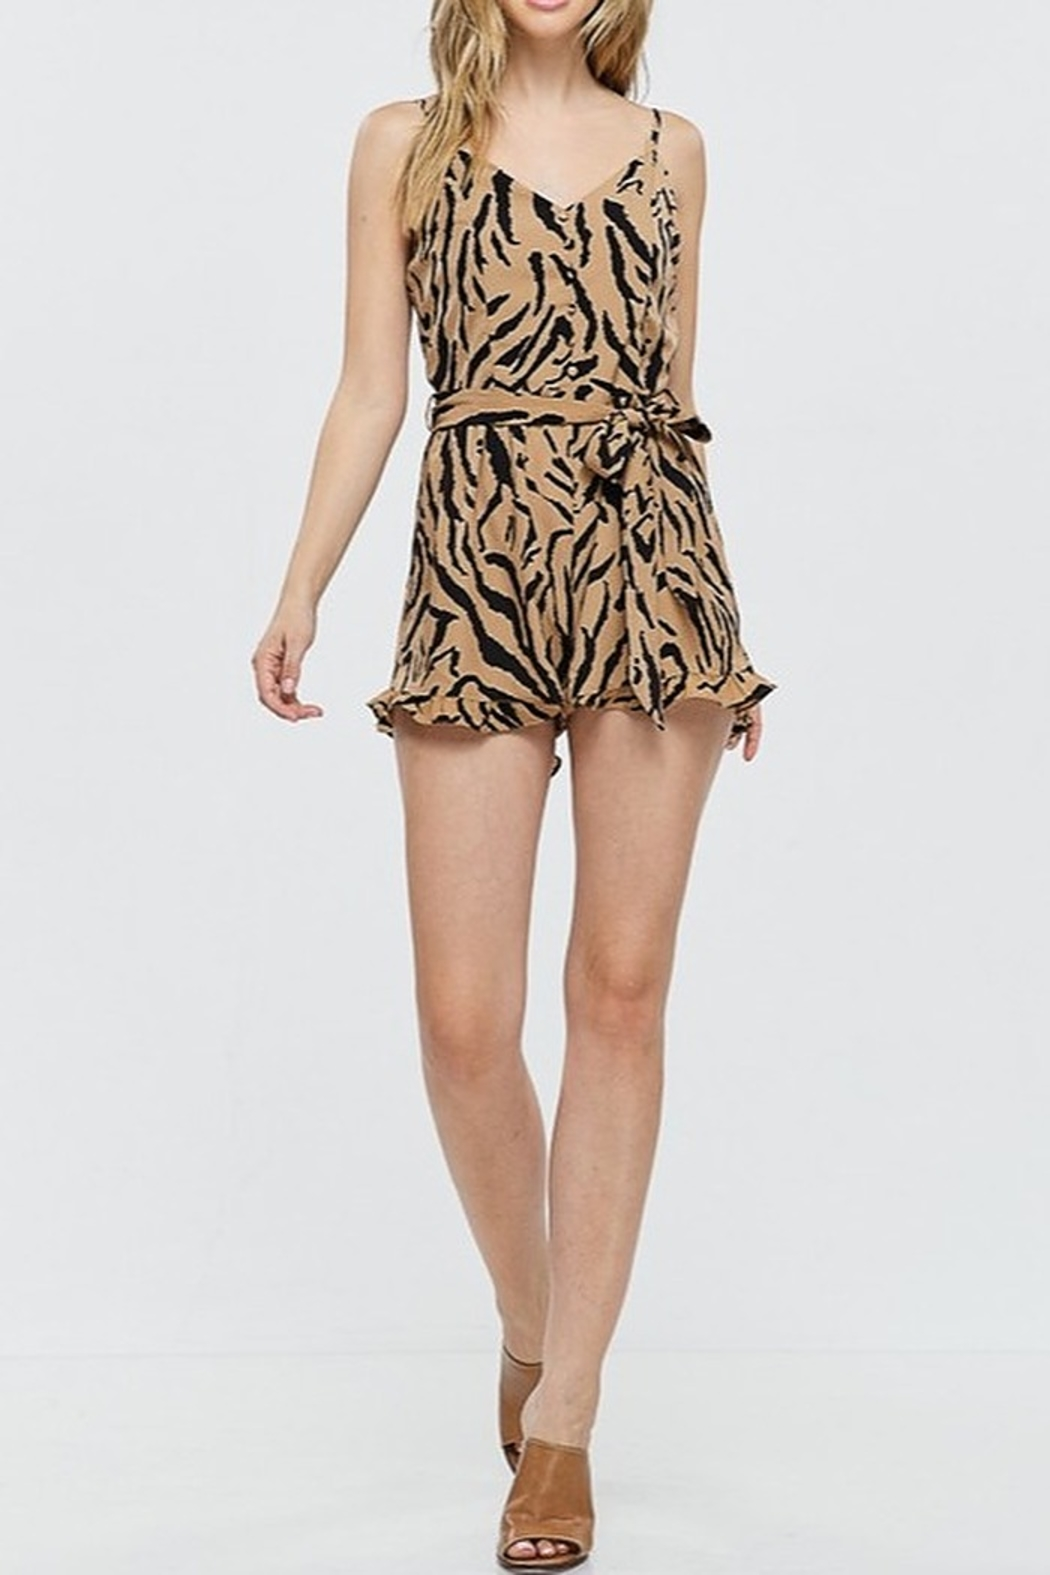 Papermoon Animal Print Romper - Back Cropped Image